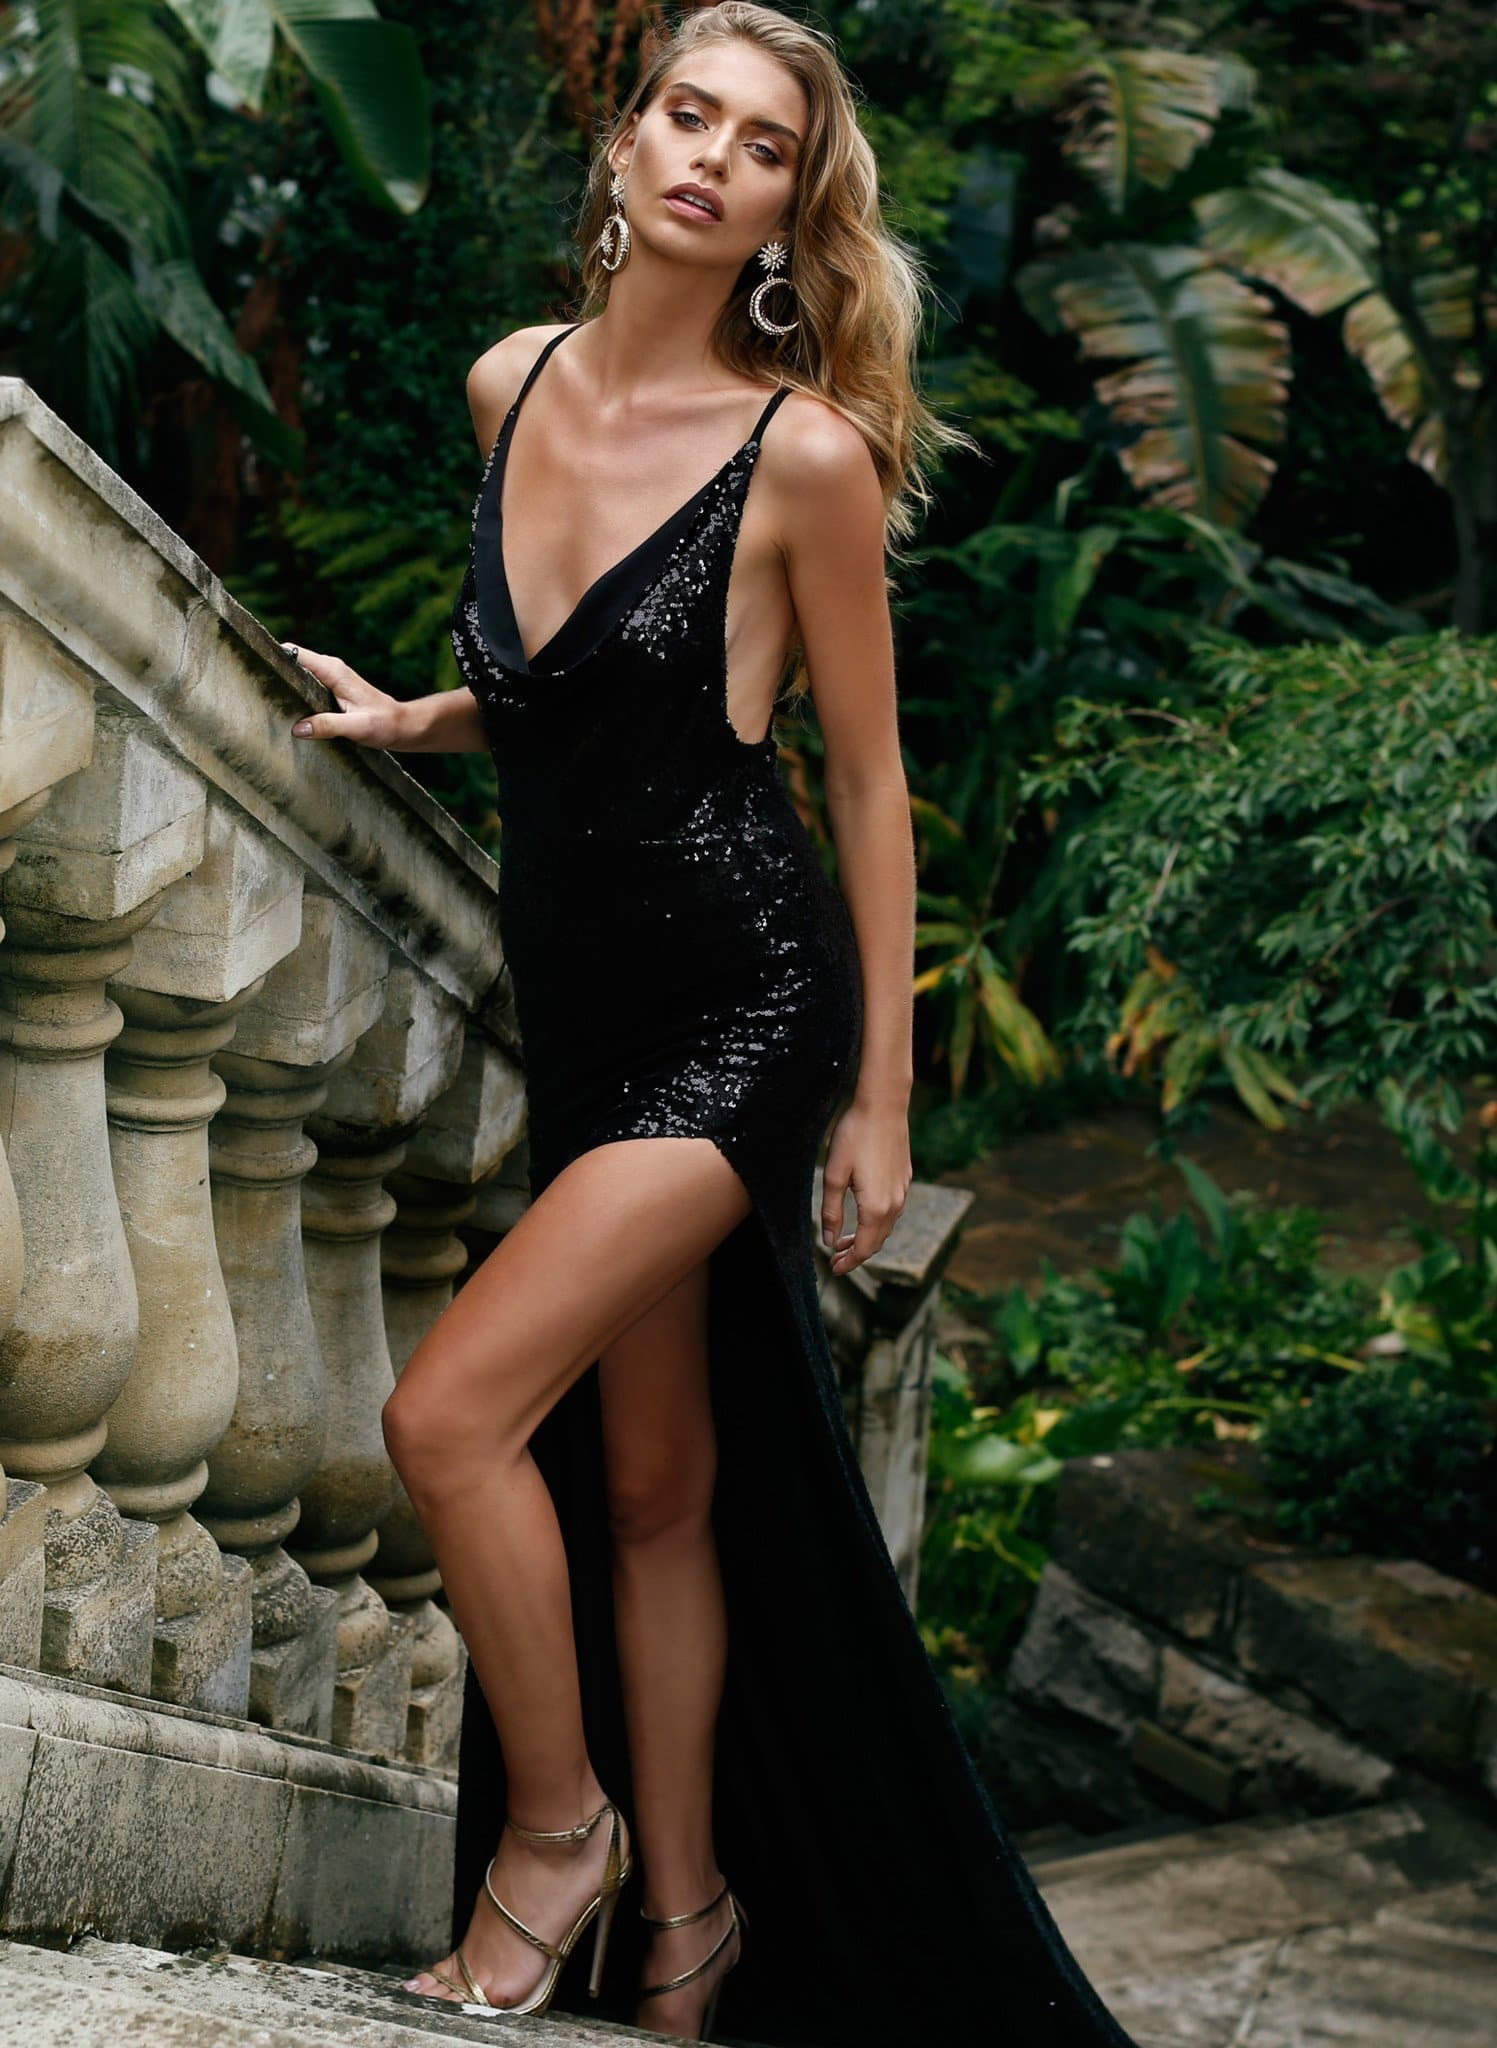 Andriana Gown -Black Sequins Low Back Dress with Cowl Neckline & Slit